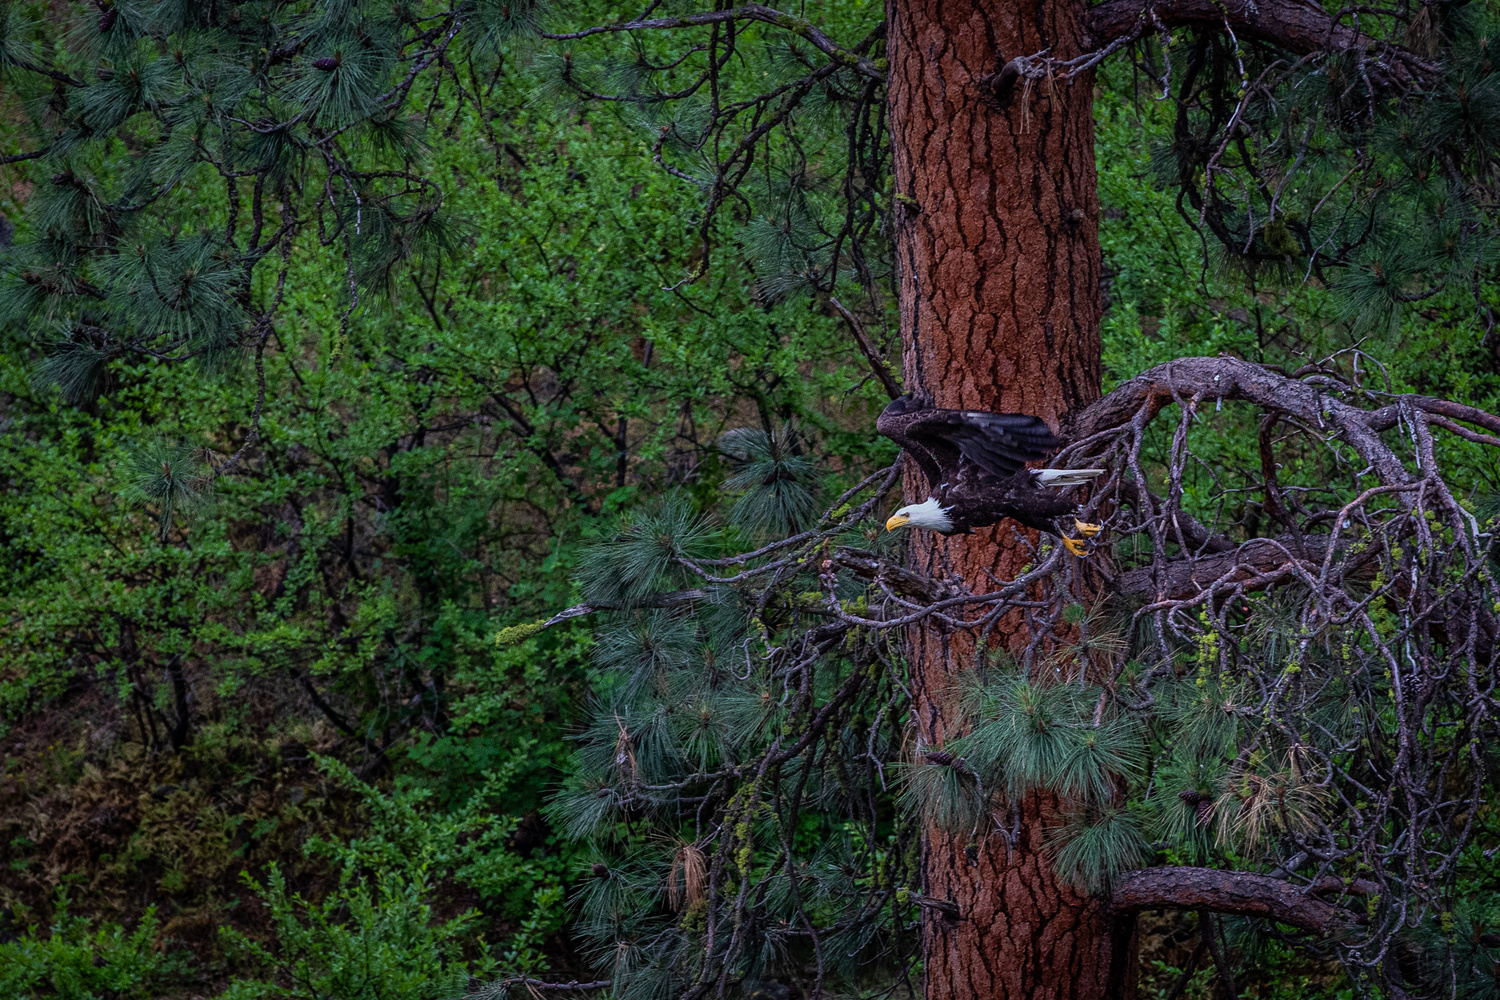 Bald Eagle in the Idaho wilderness by BENJAMIN THOMPSON